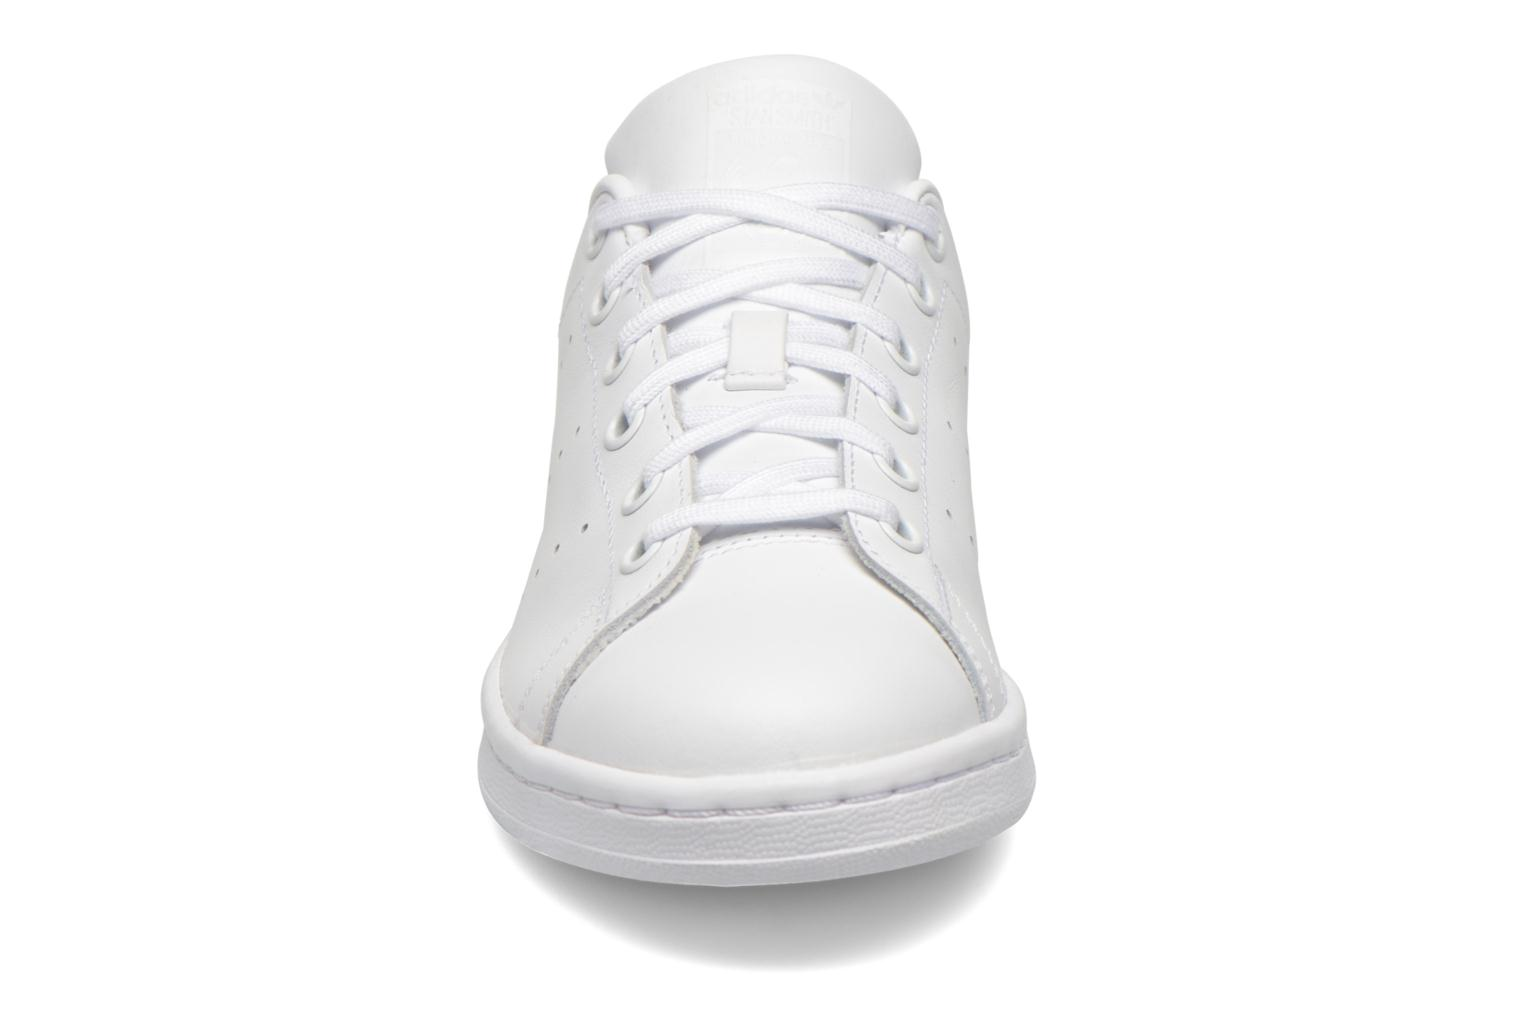 Ftwbla/Ftwbla/Ftwbla Adidas Originals STAN SMITH J (Blanc)